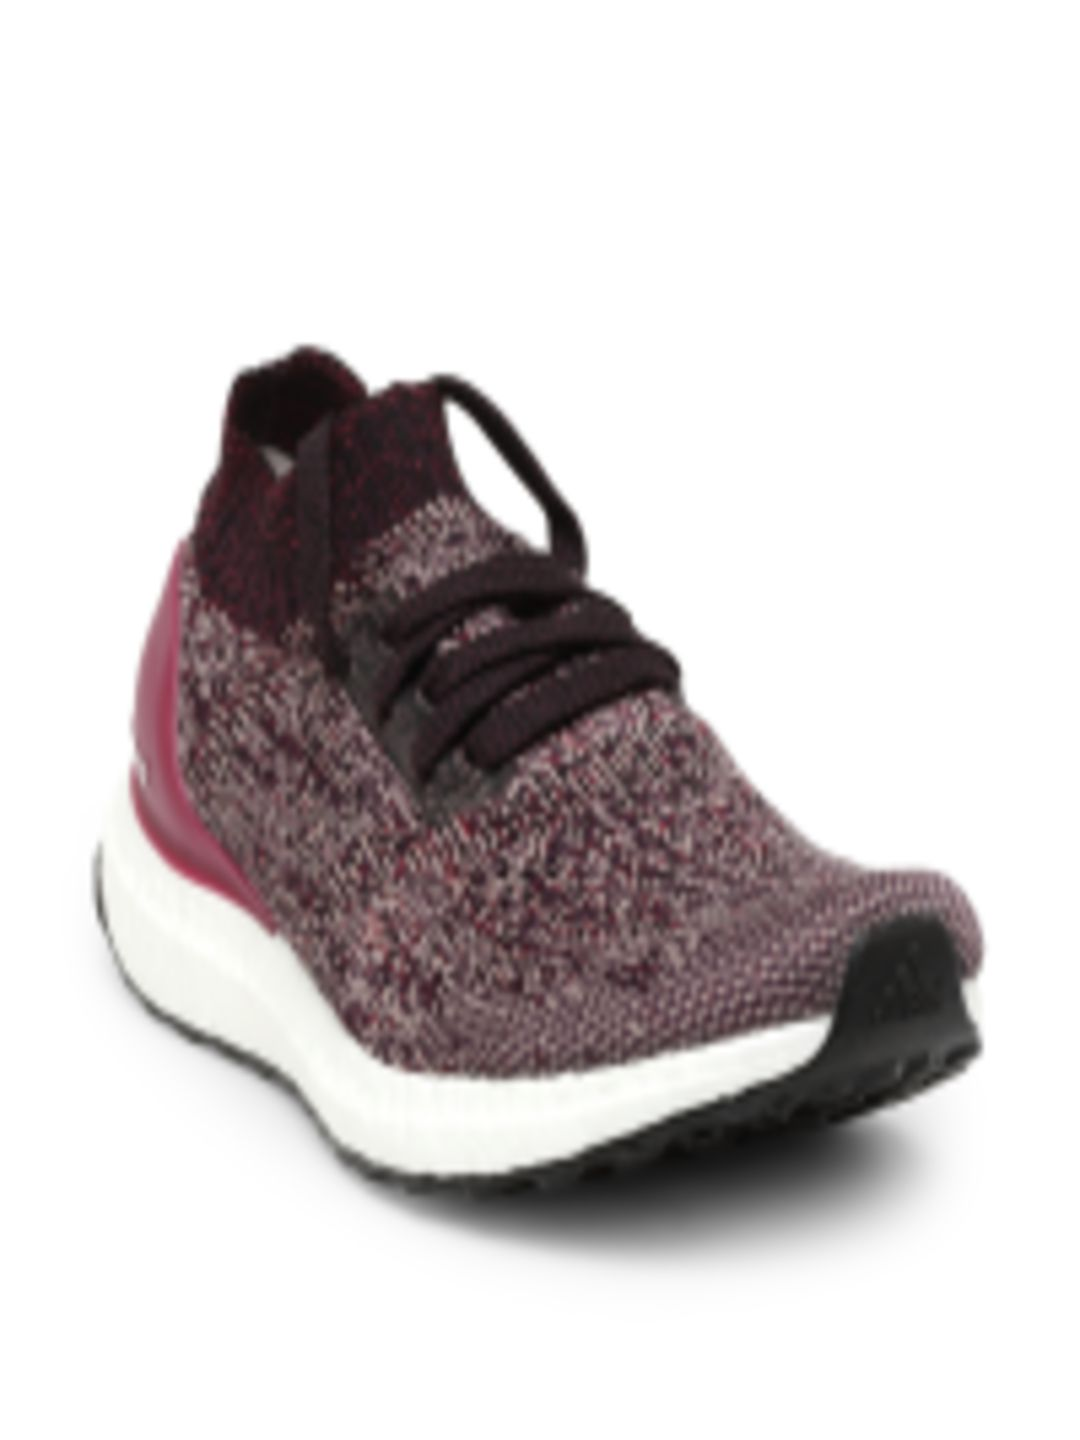 27542f6362484 Buy Adidas Women Burgundy Ultraboost Uncaged Running Shoes - Sports Shoes  for Women 2496284